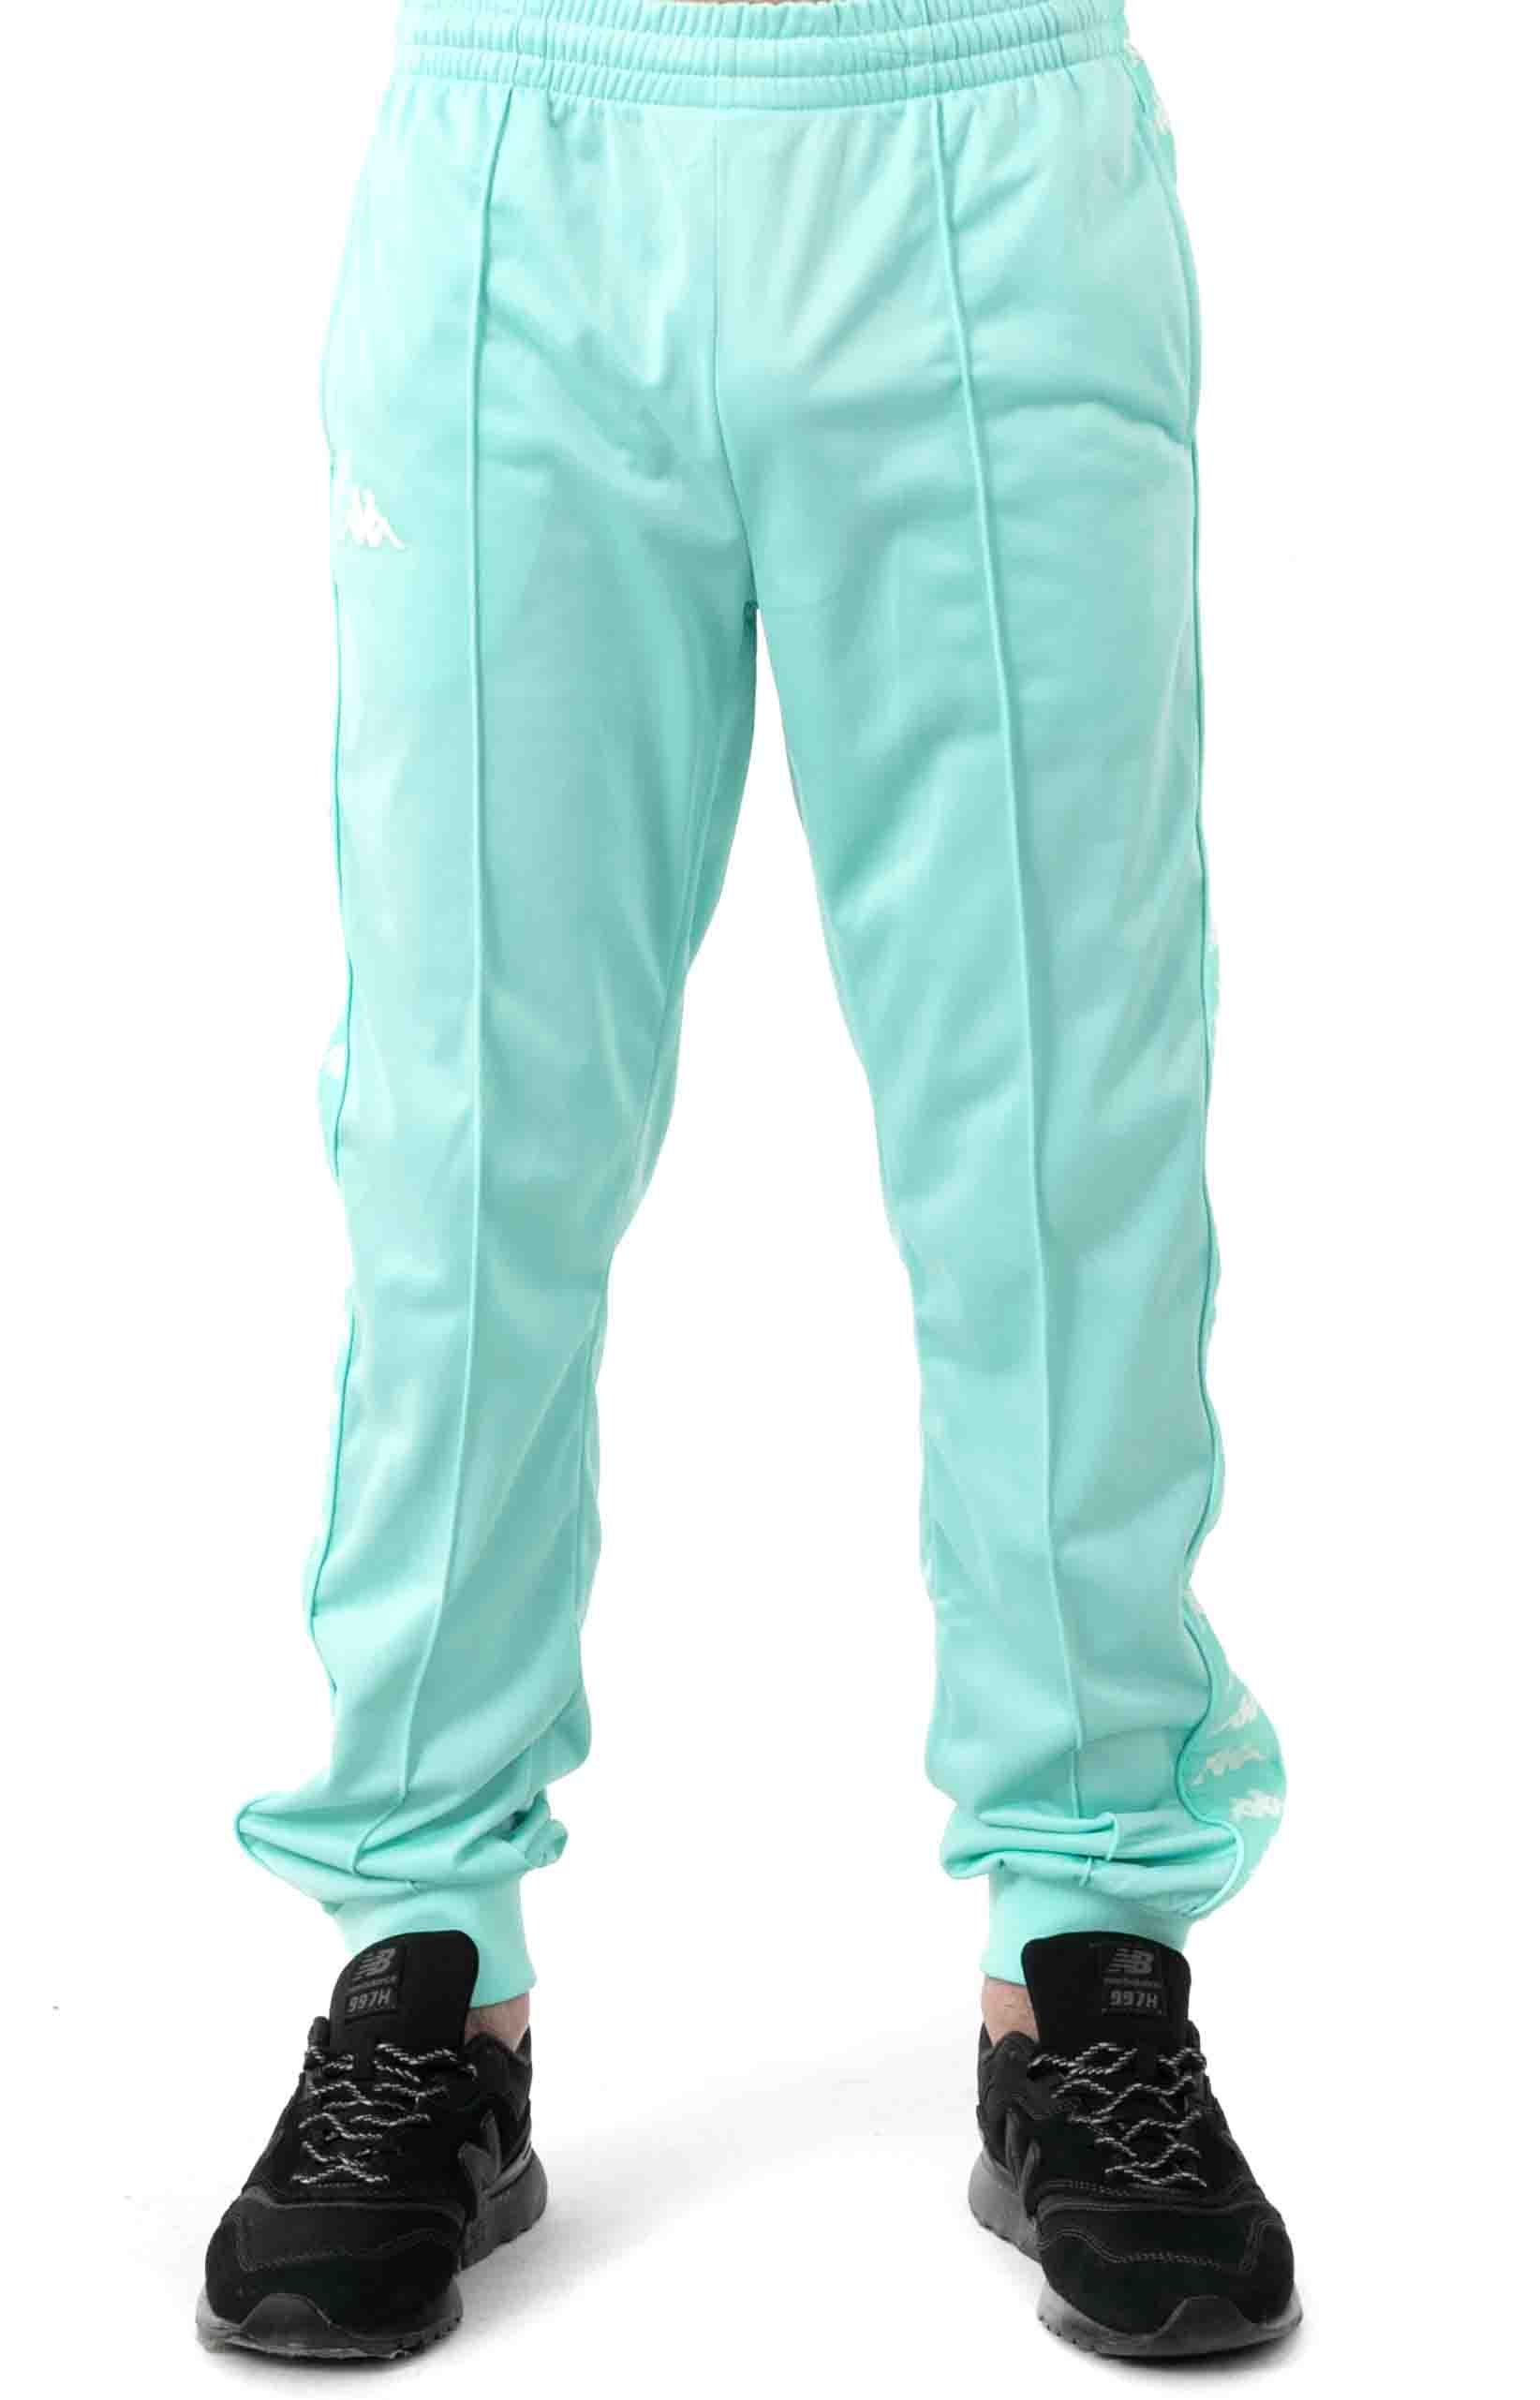 222 Banda Rastoriazz Trackpant - Green Aqua